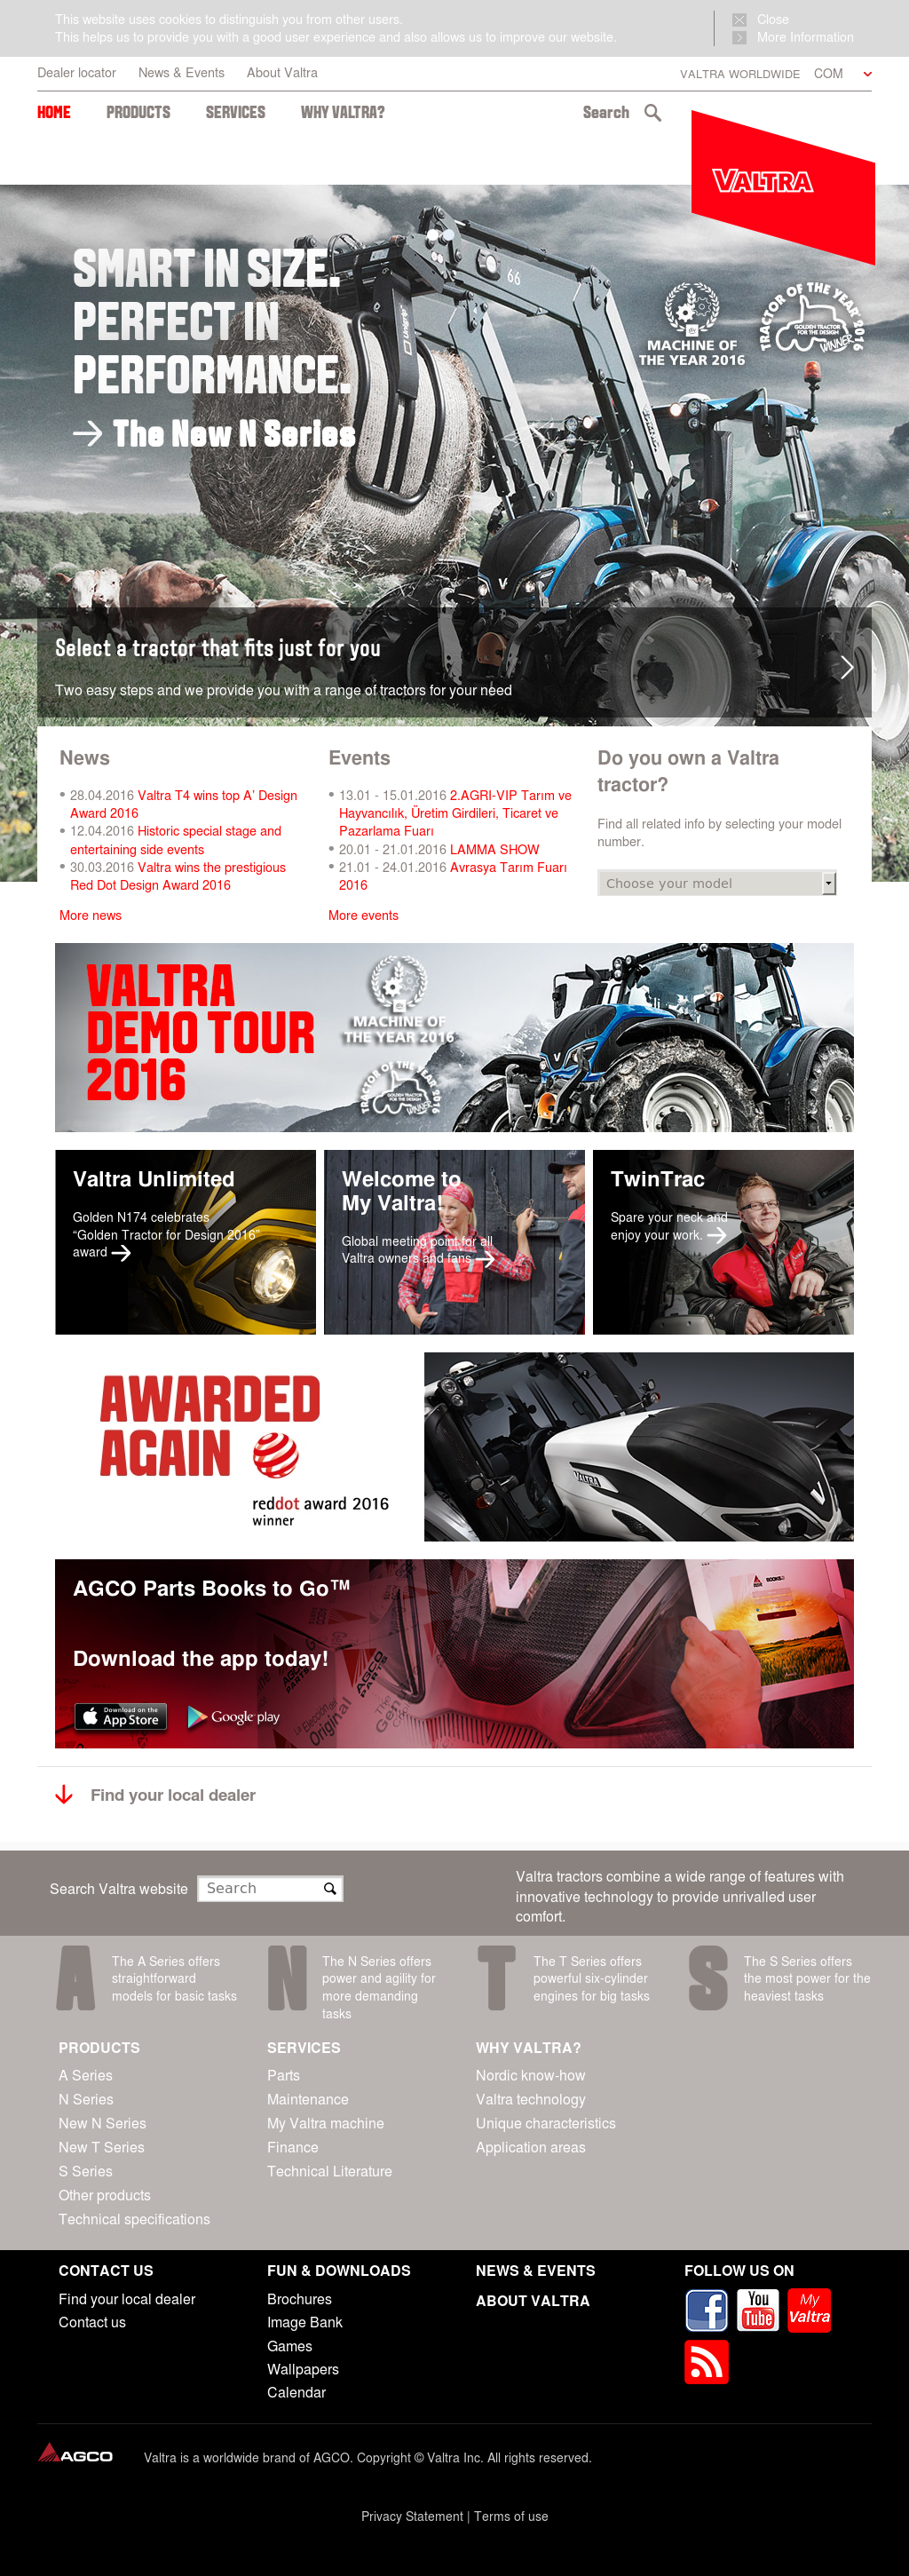 Valtra Competitors, Revenue and Employees - Owler Company Profile